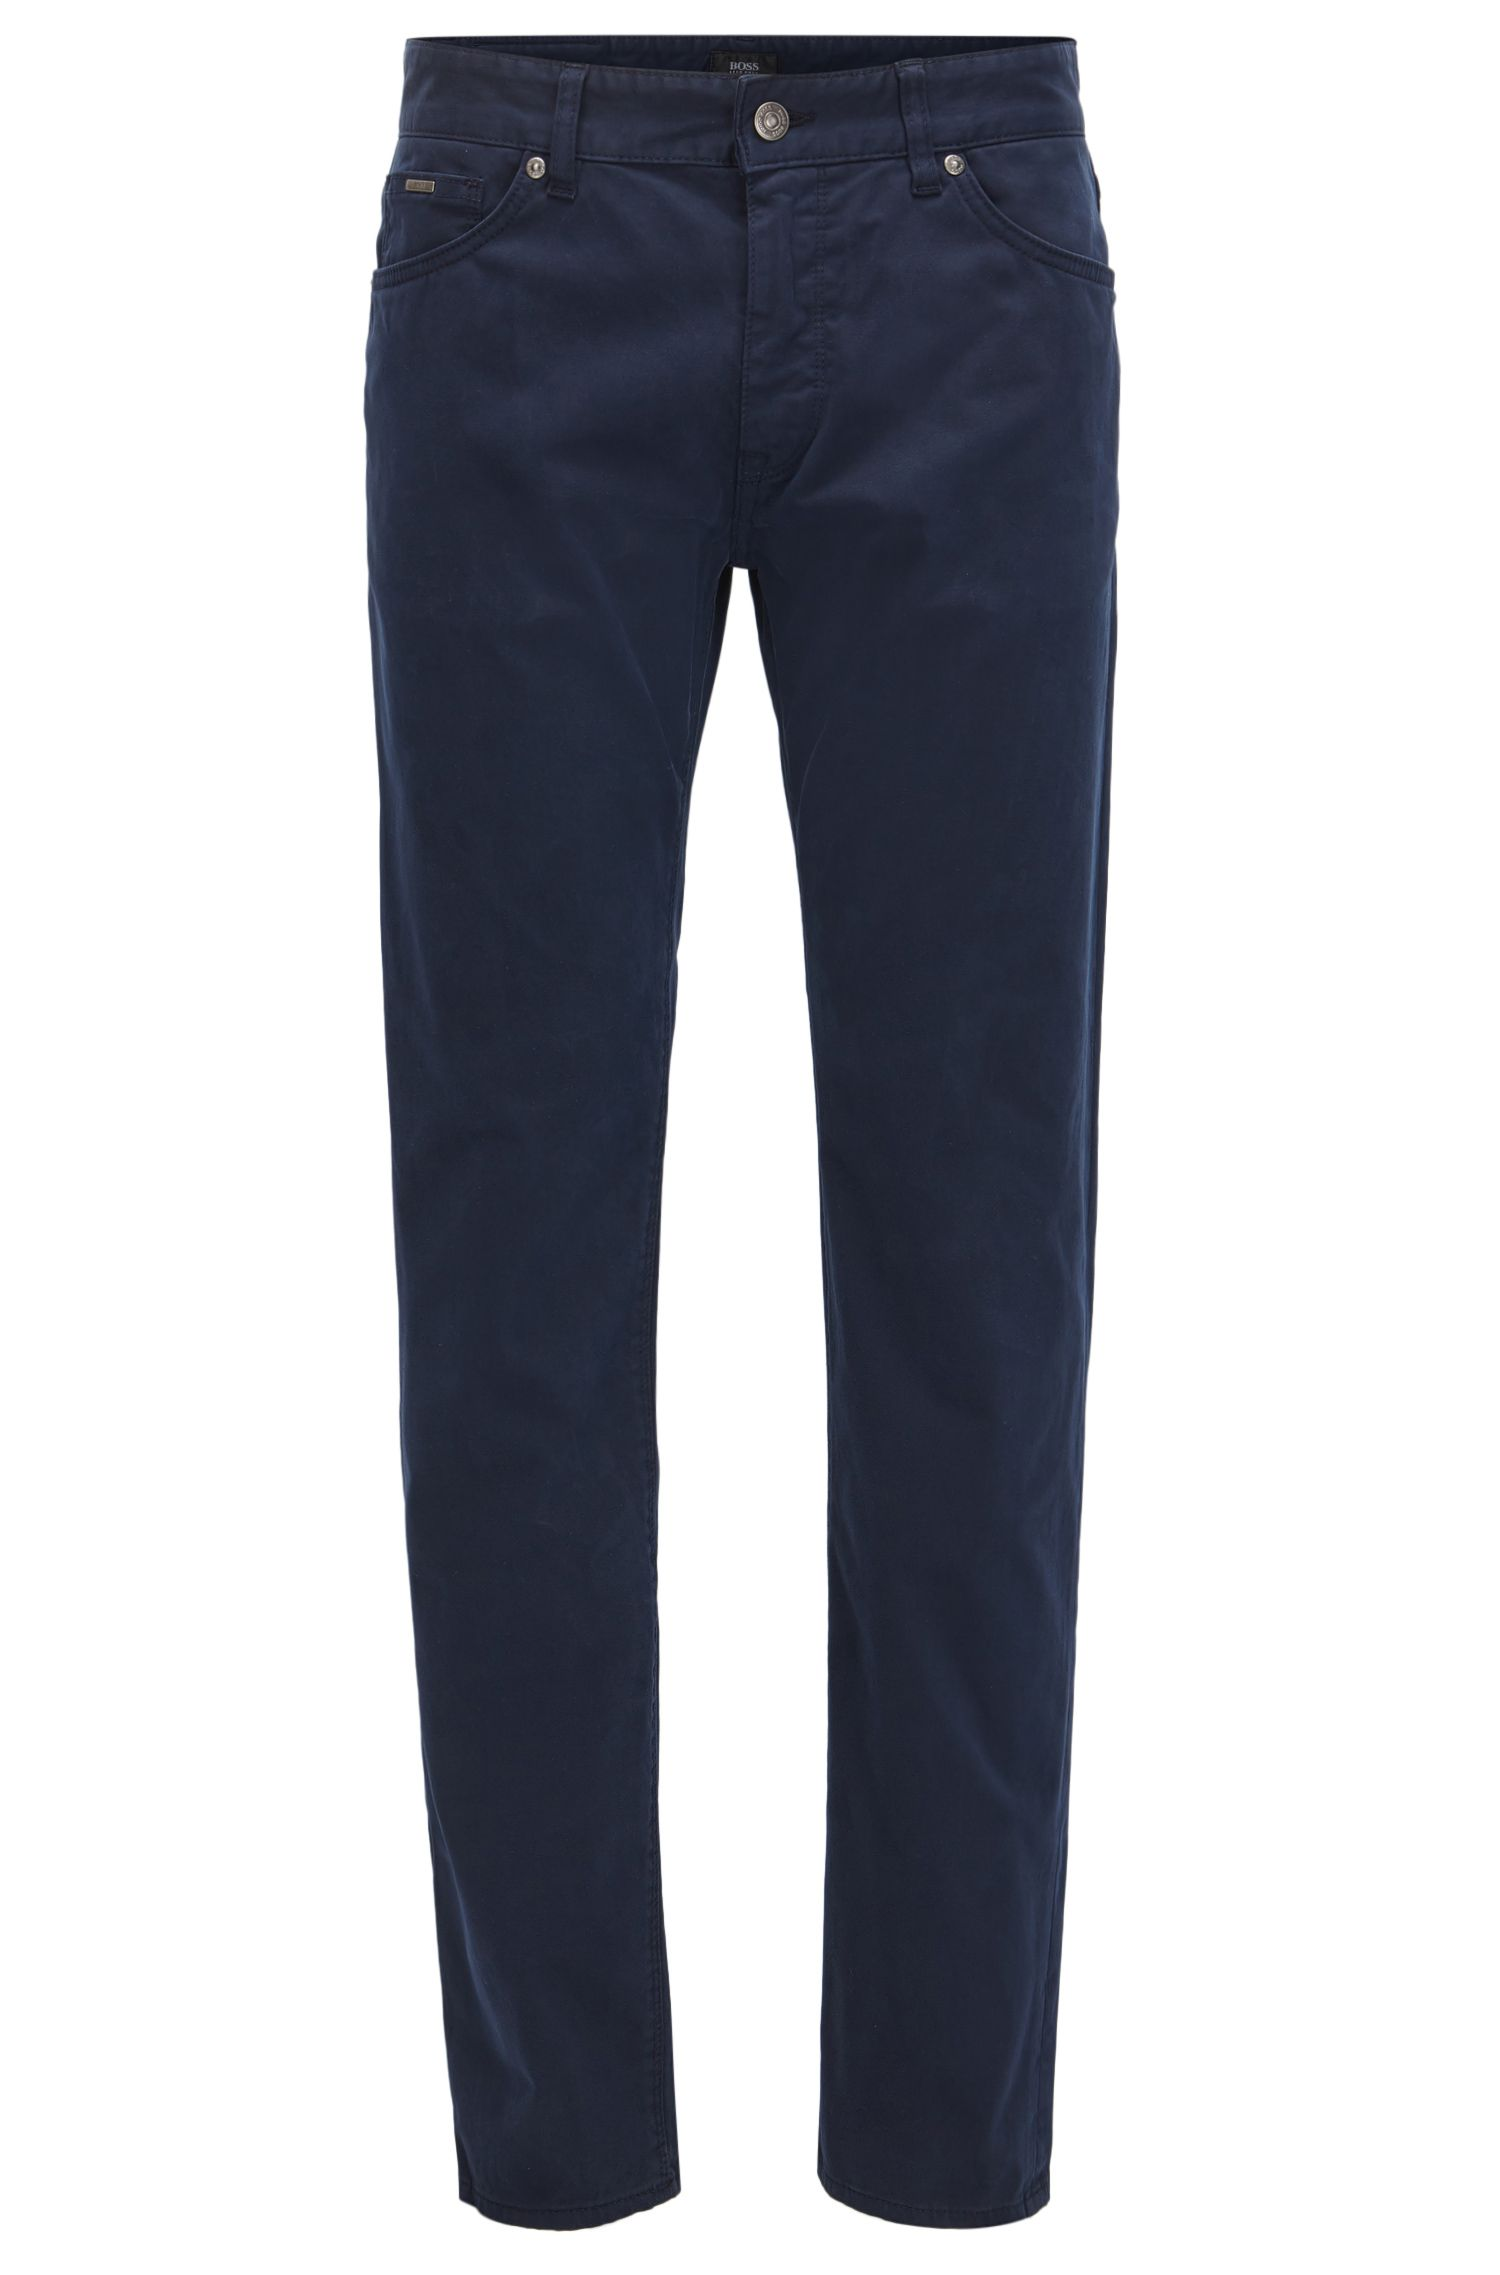 Regular-fit jeans in diamond-brushed stretch satin